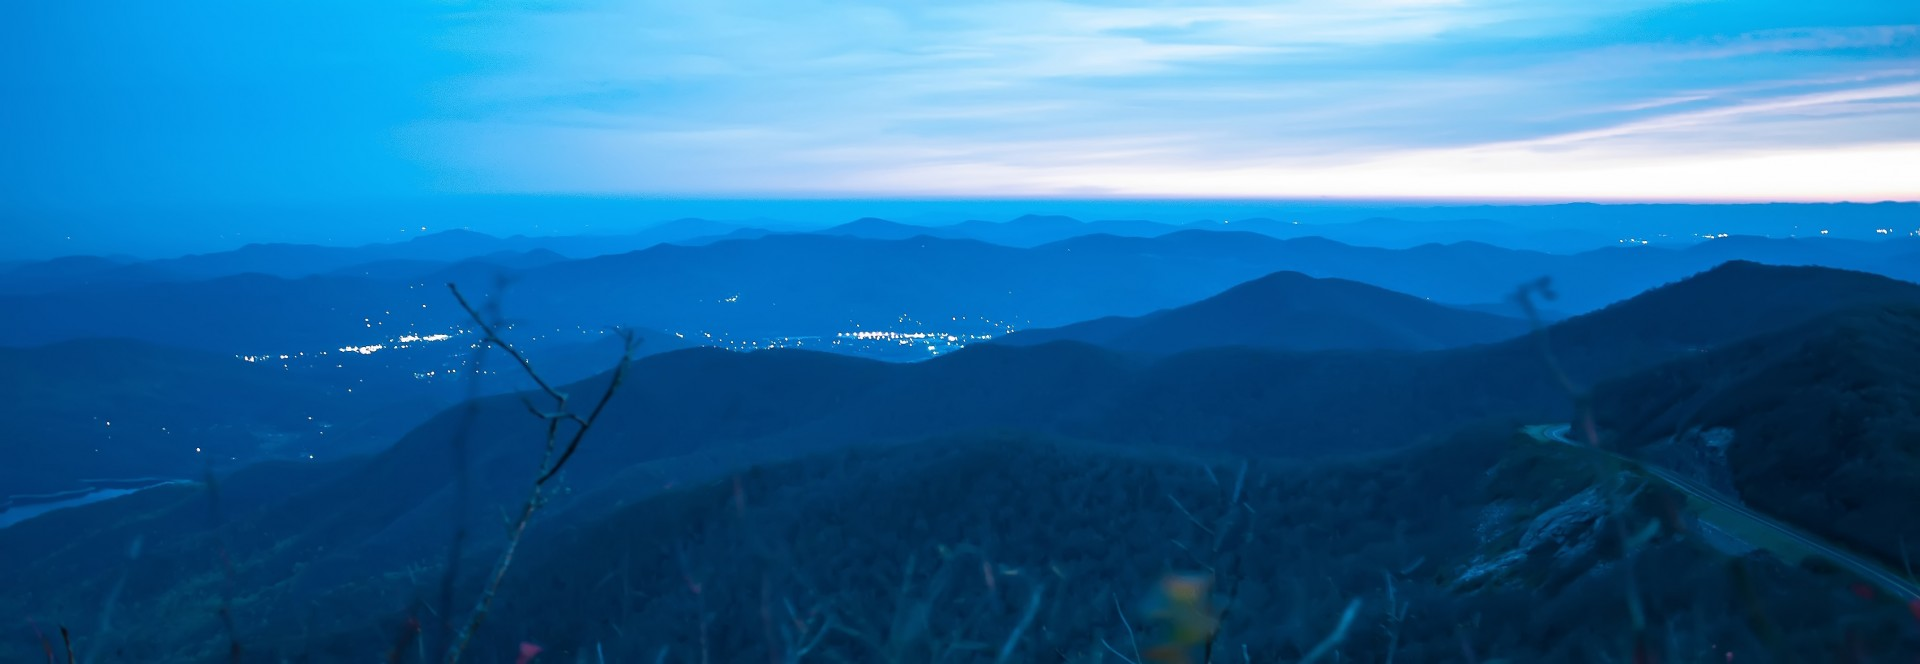 blue-ridge-mountains-sunset-at-dusk.jpg